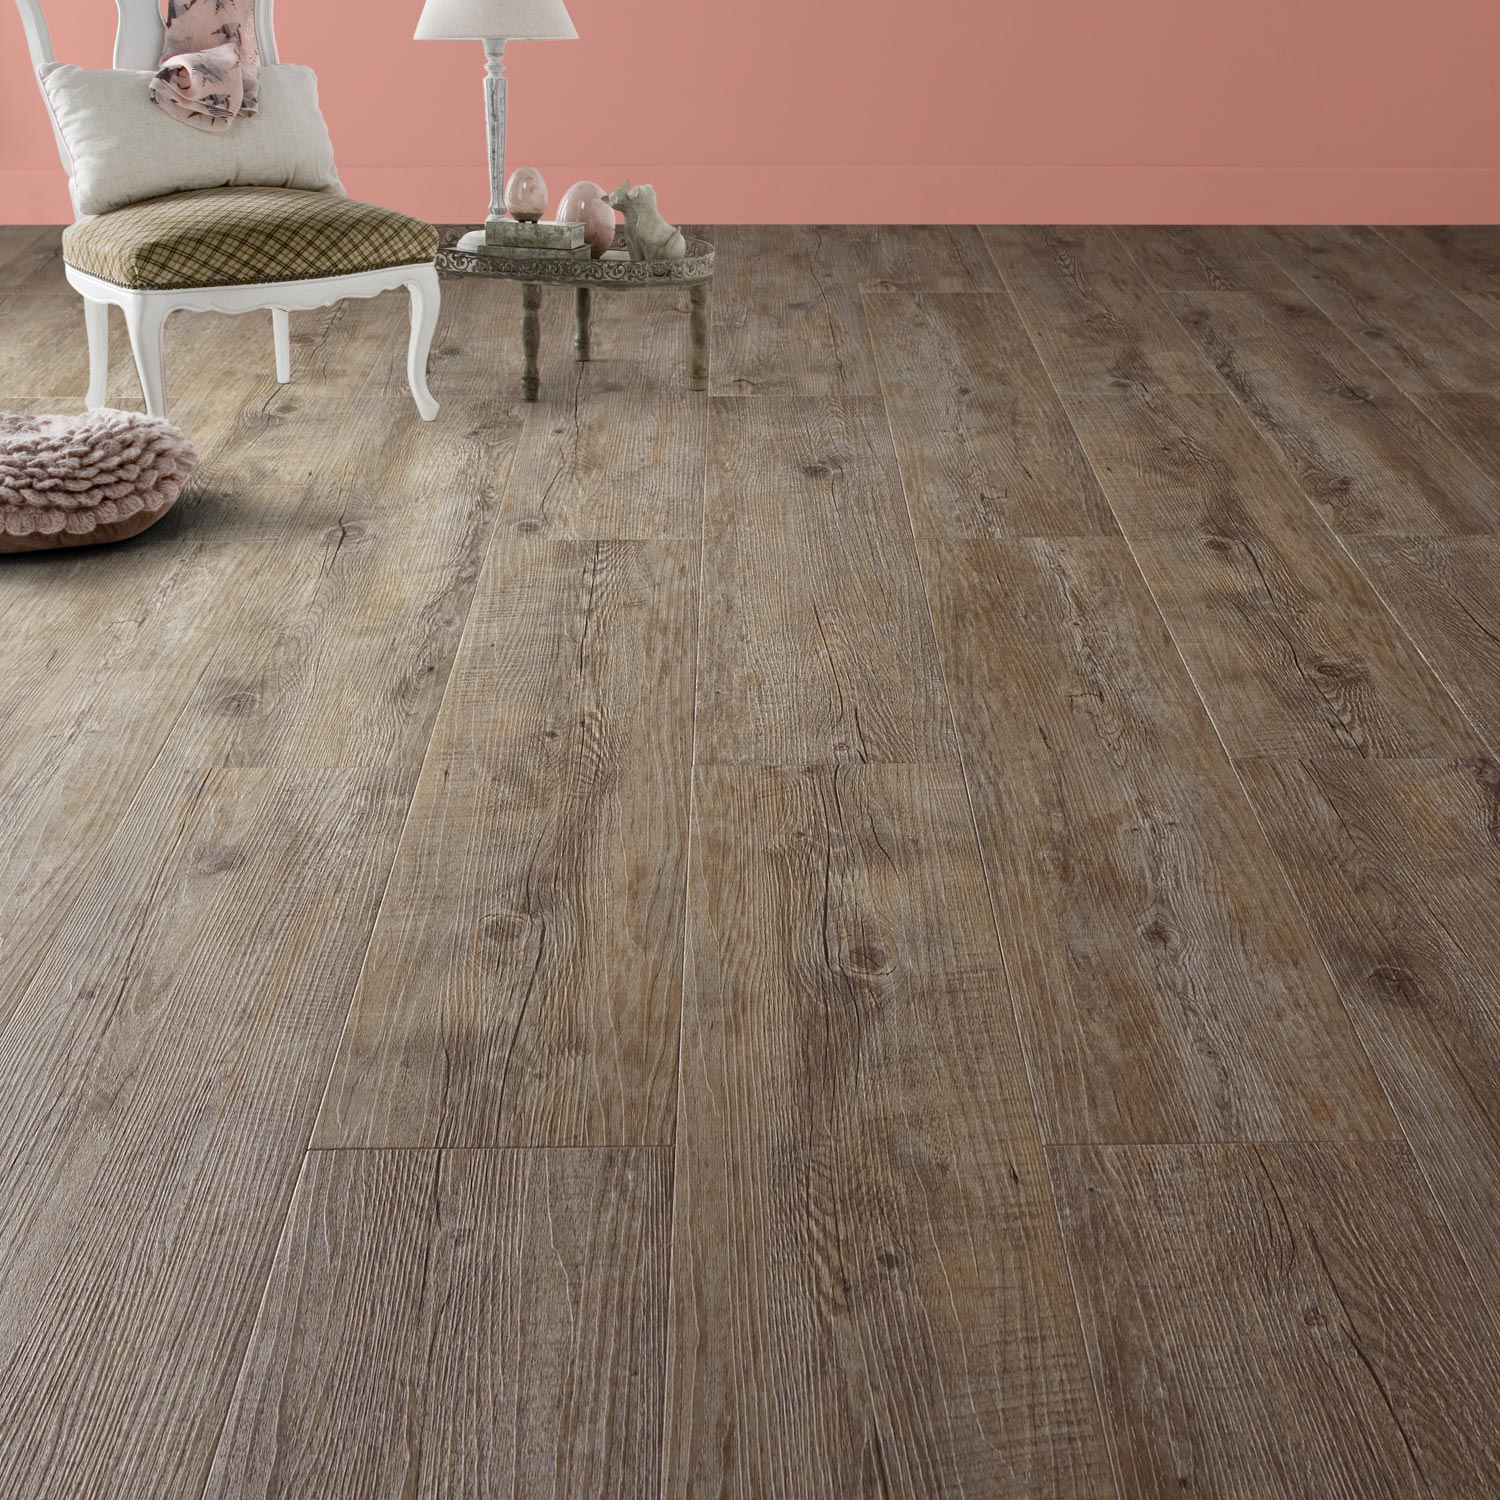 Lame pvc adh sive gris pecan senso rustic gerflor leroy for Carrelage clipsable leroy merlin